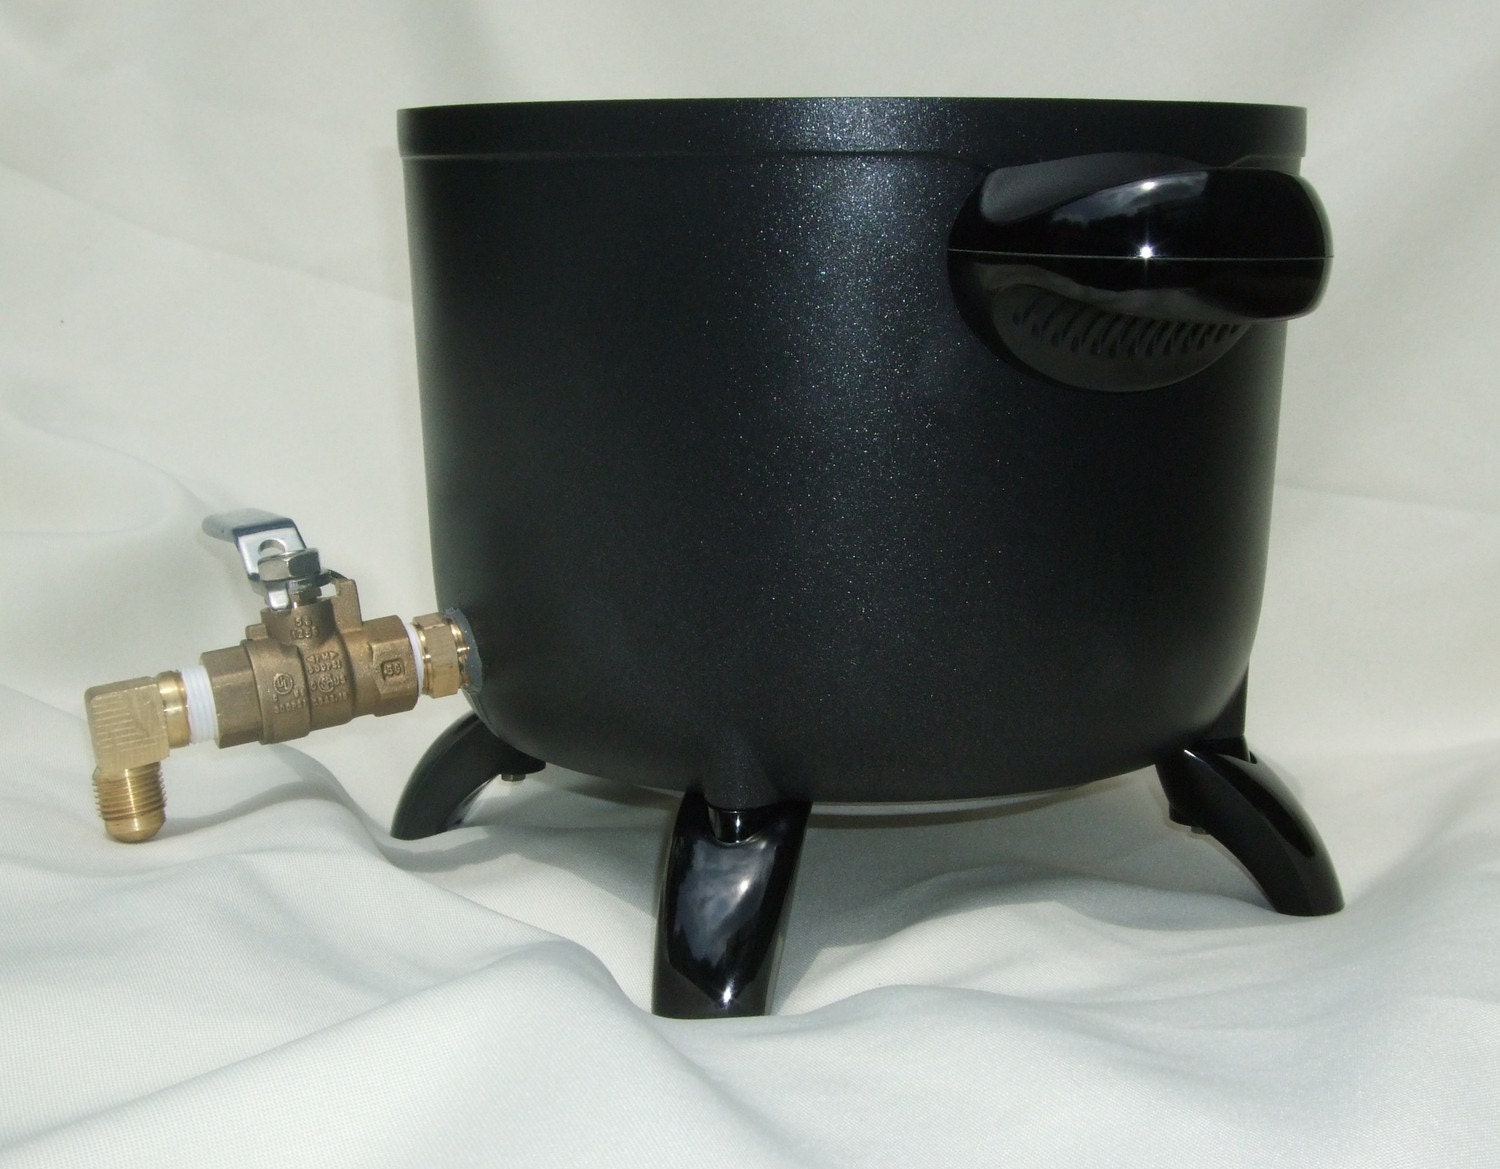 presto pot wax melter for candle making